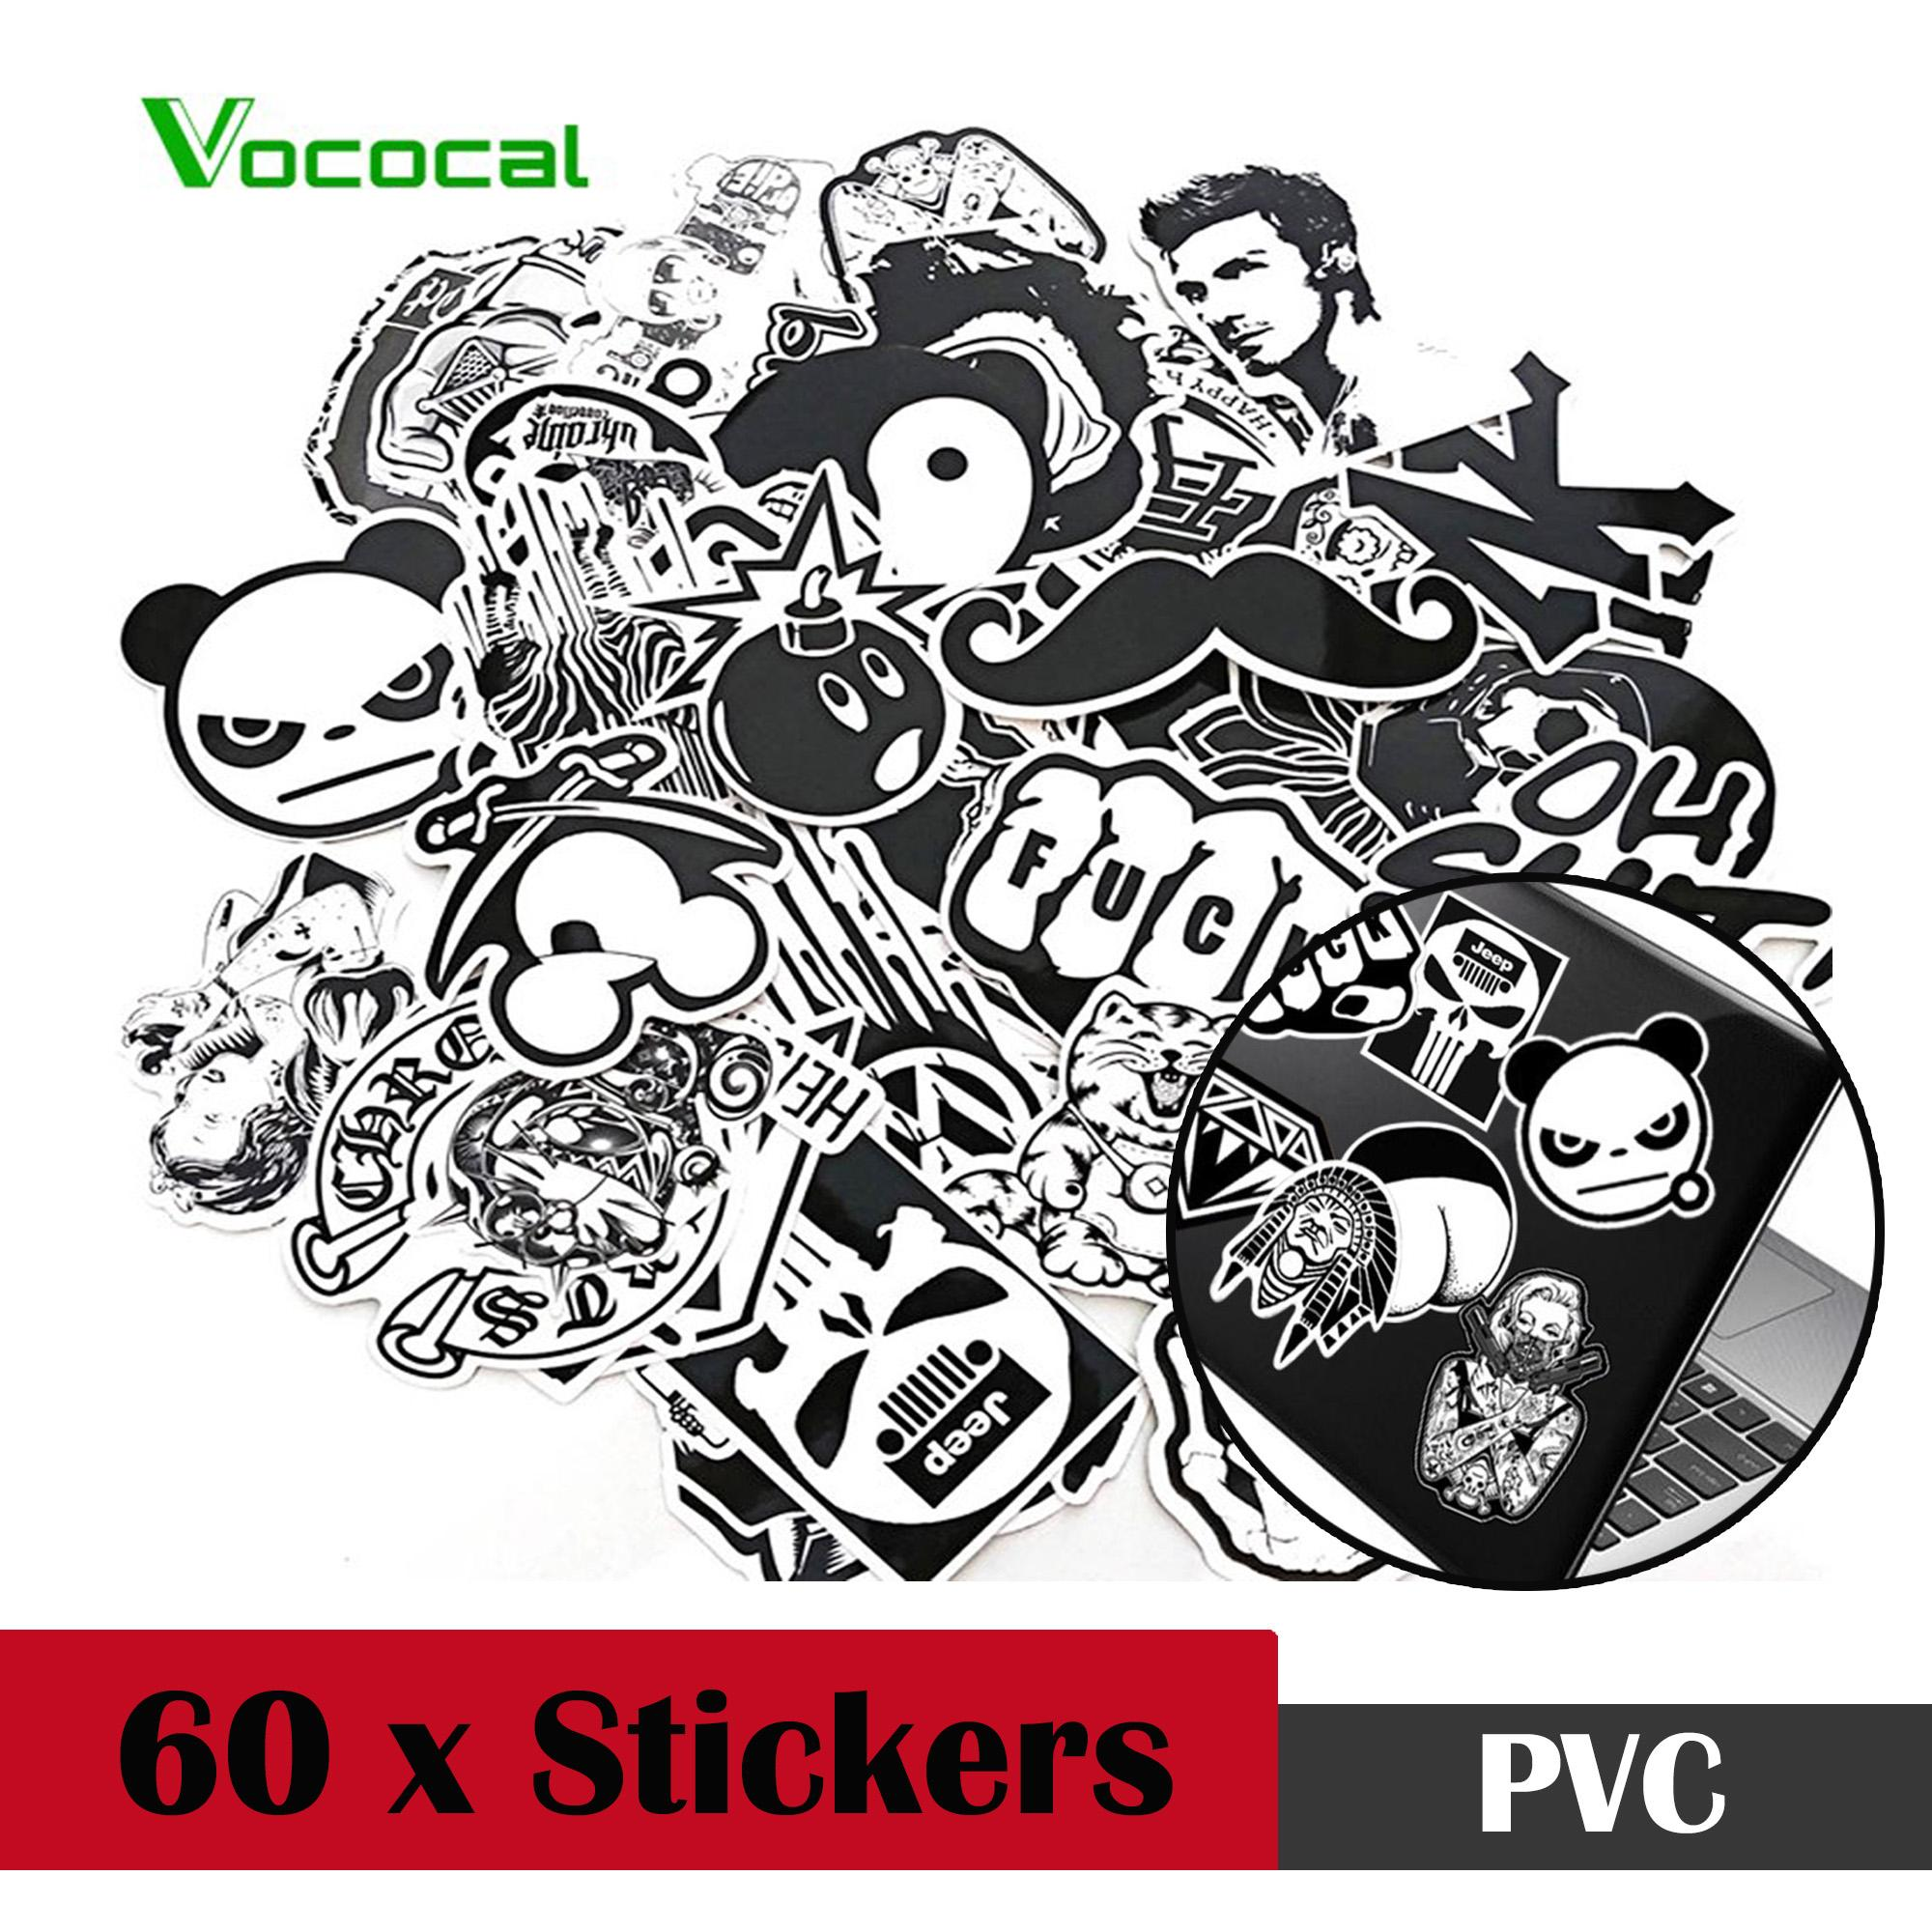 Vococal 60 Pcs Black White Waterproof Removable Skateboard Guitar Travel Case Car Motorcycle Bike Laptop Sticker Decal Stickers - Intl By Vococal Shop.